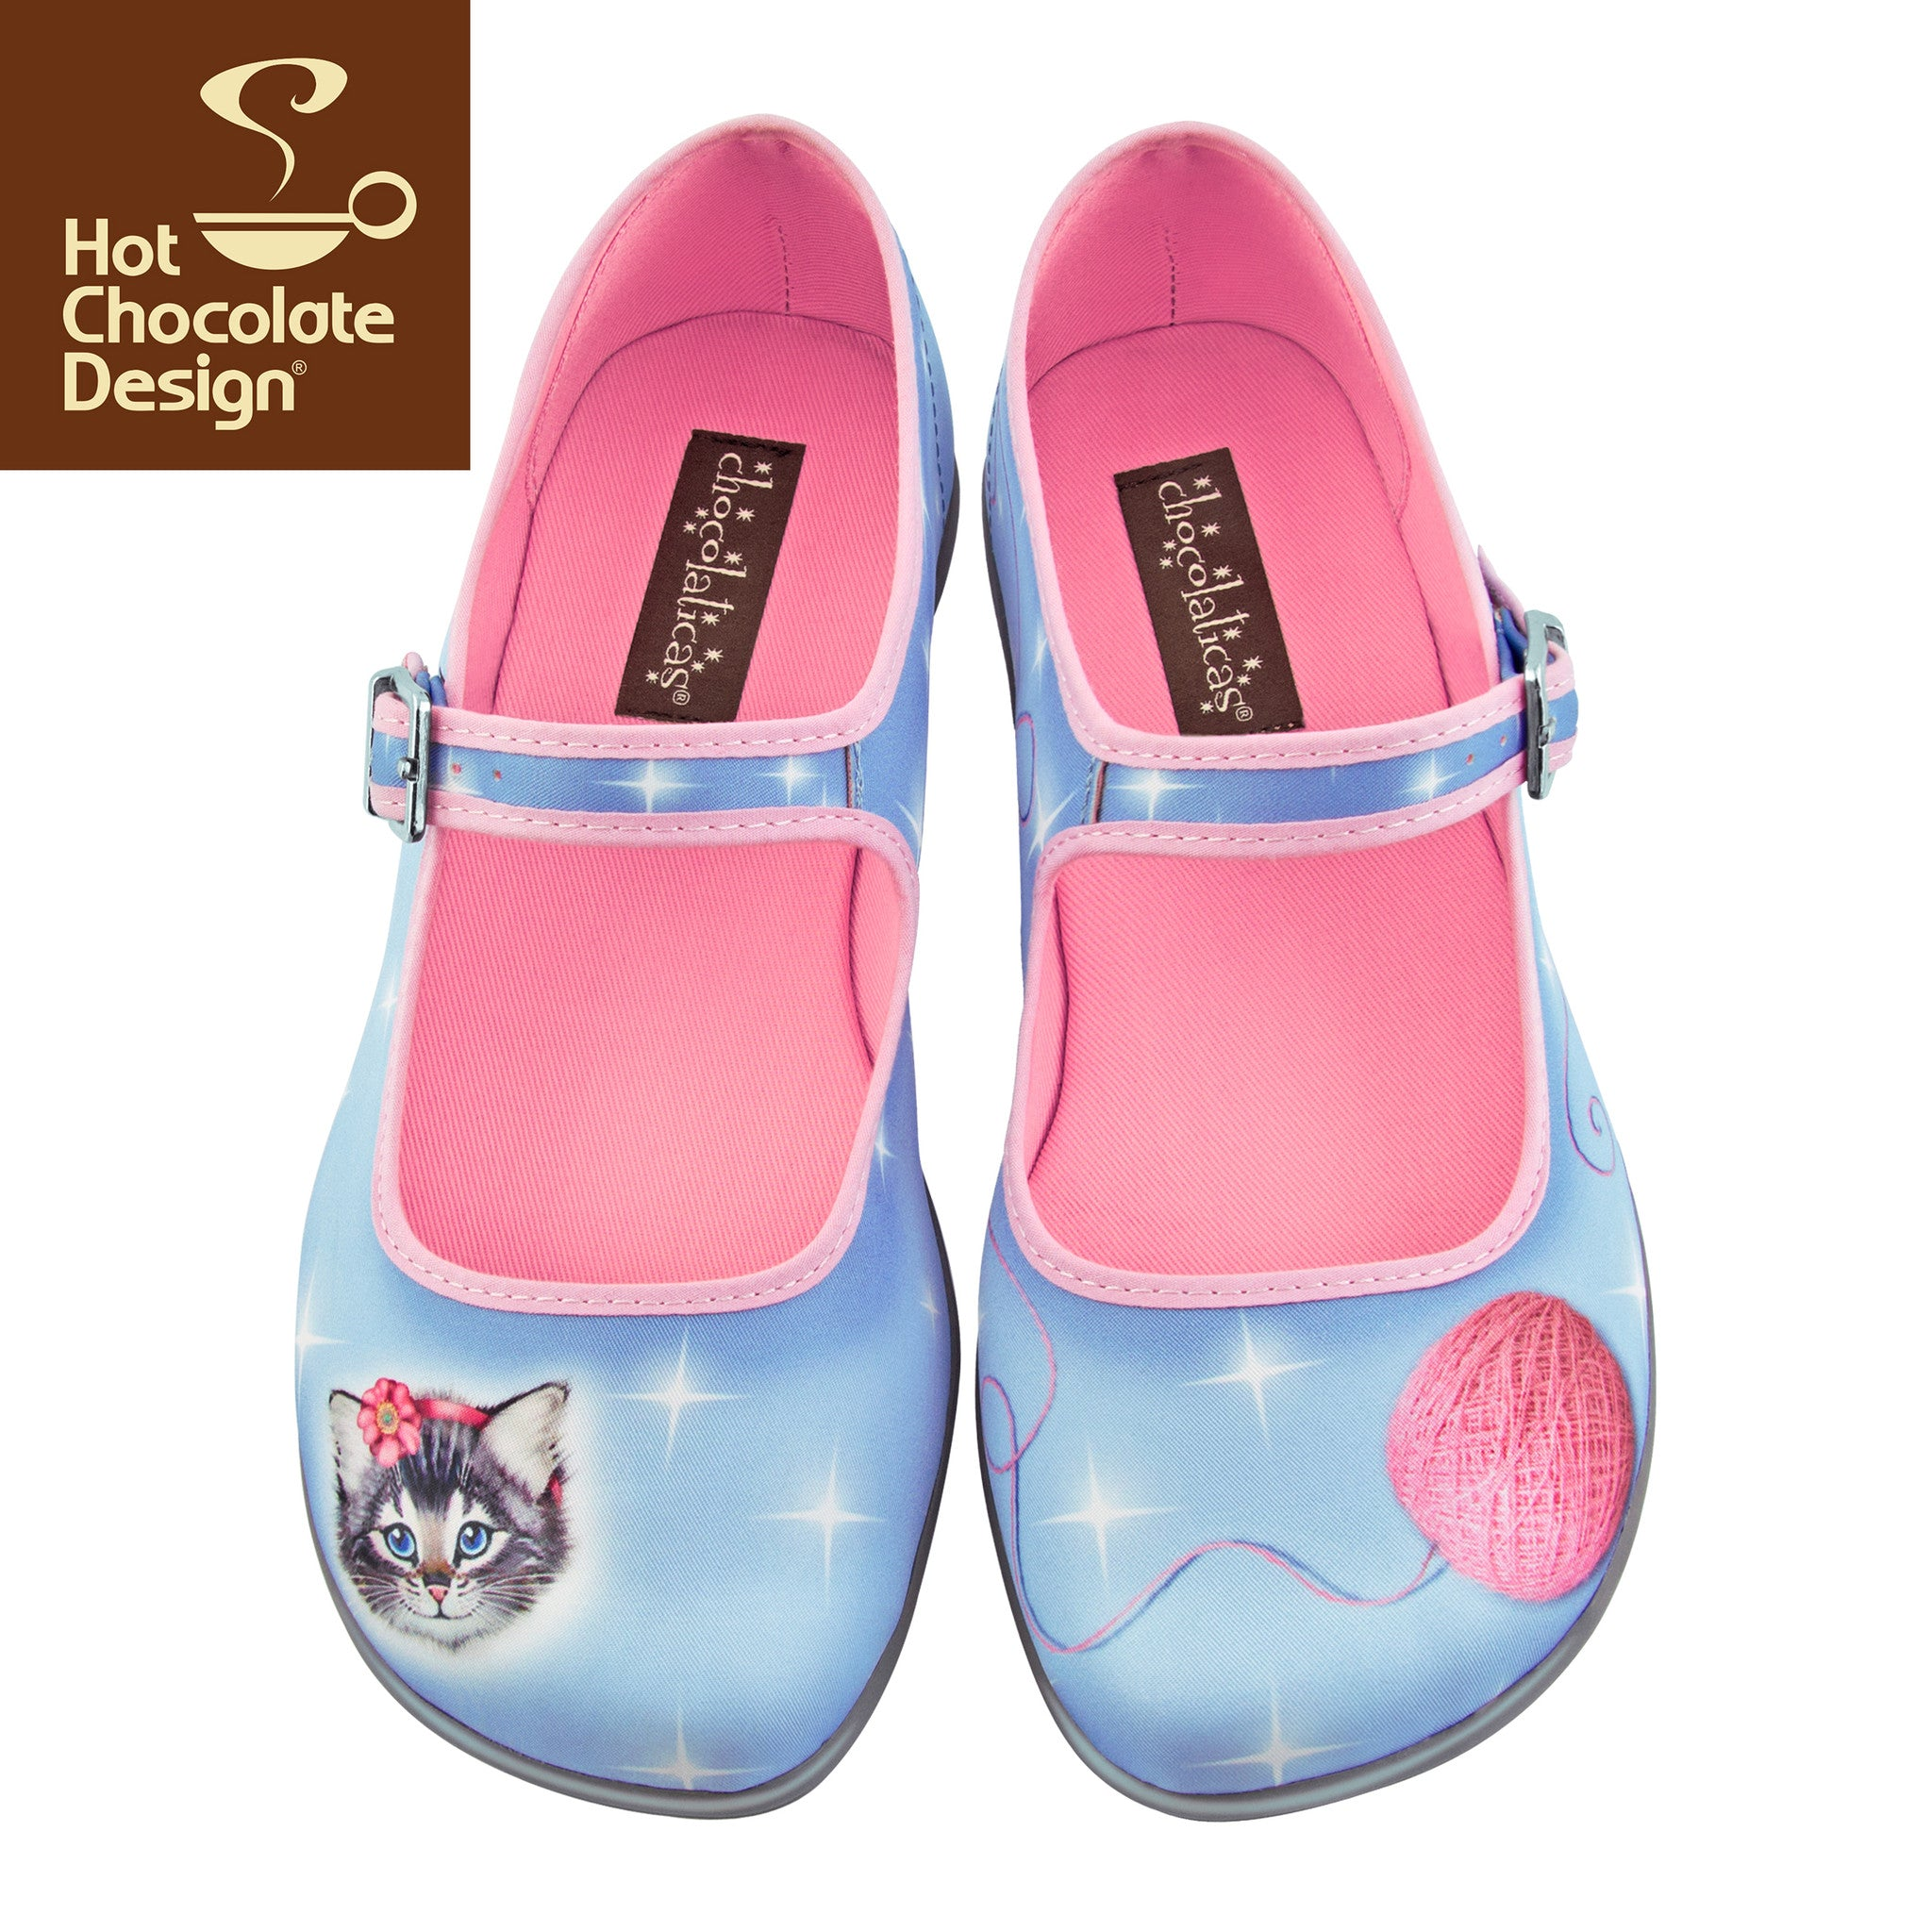 Hot Chocolate Design Shoes - Sussy Cat